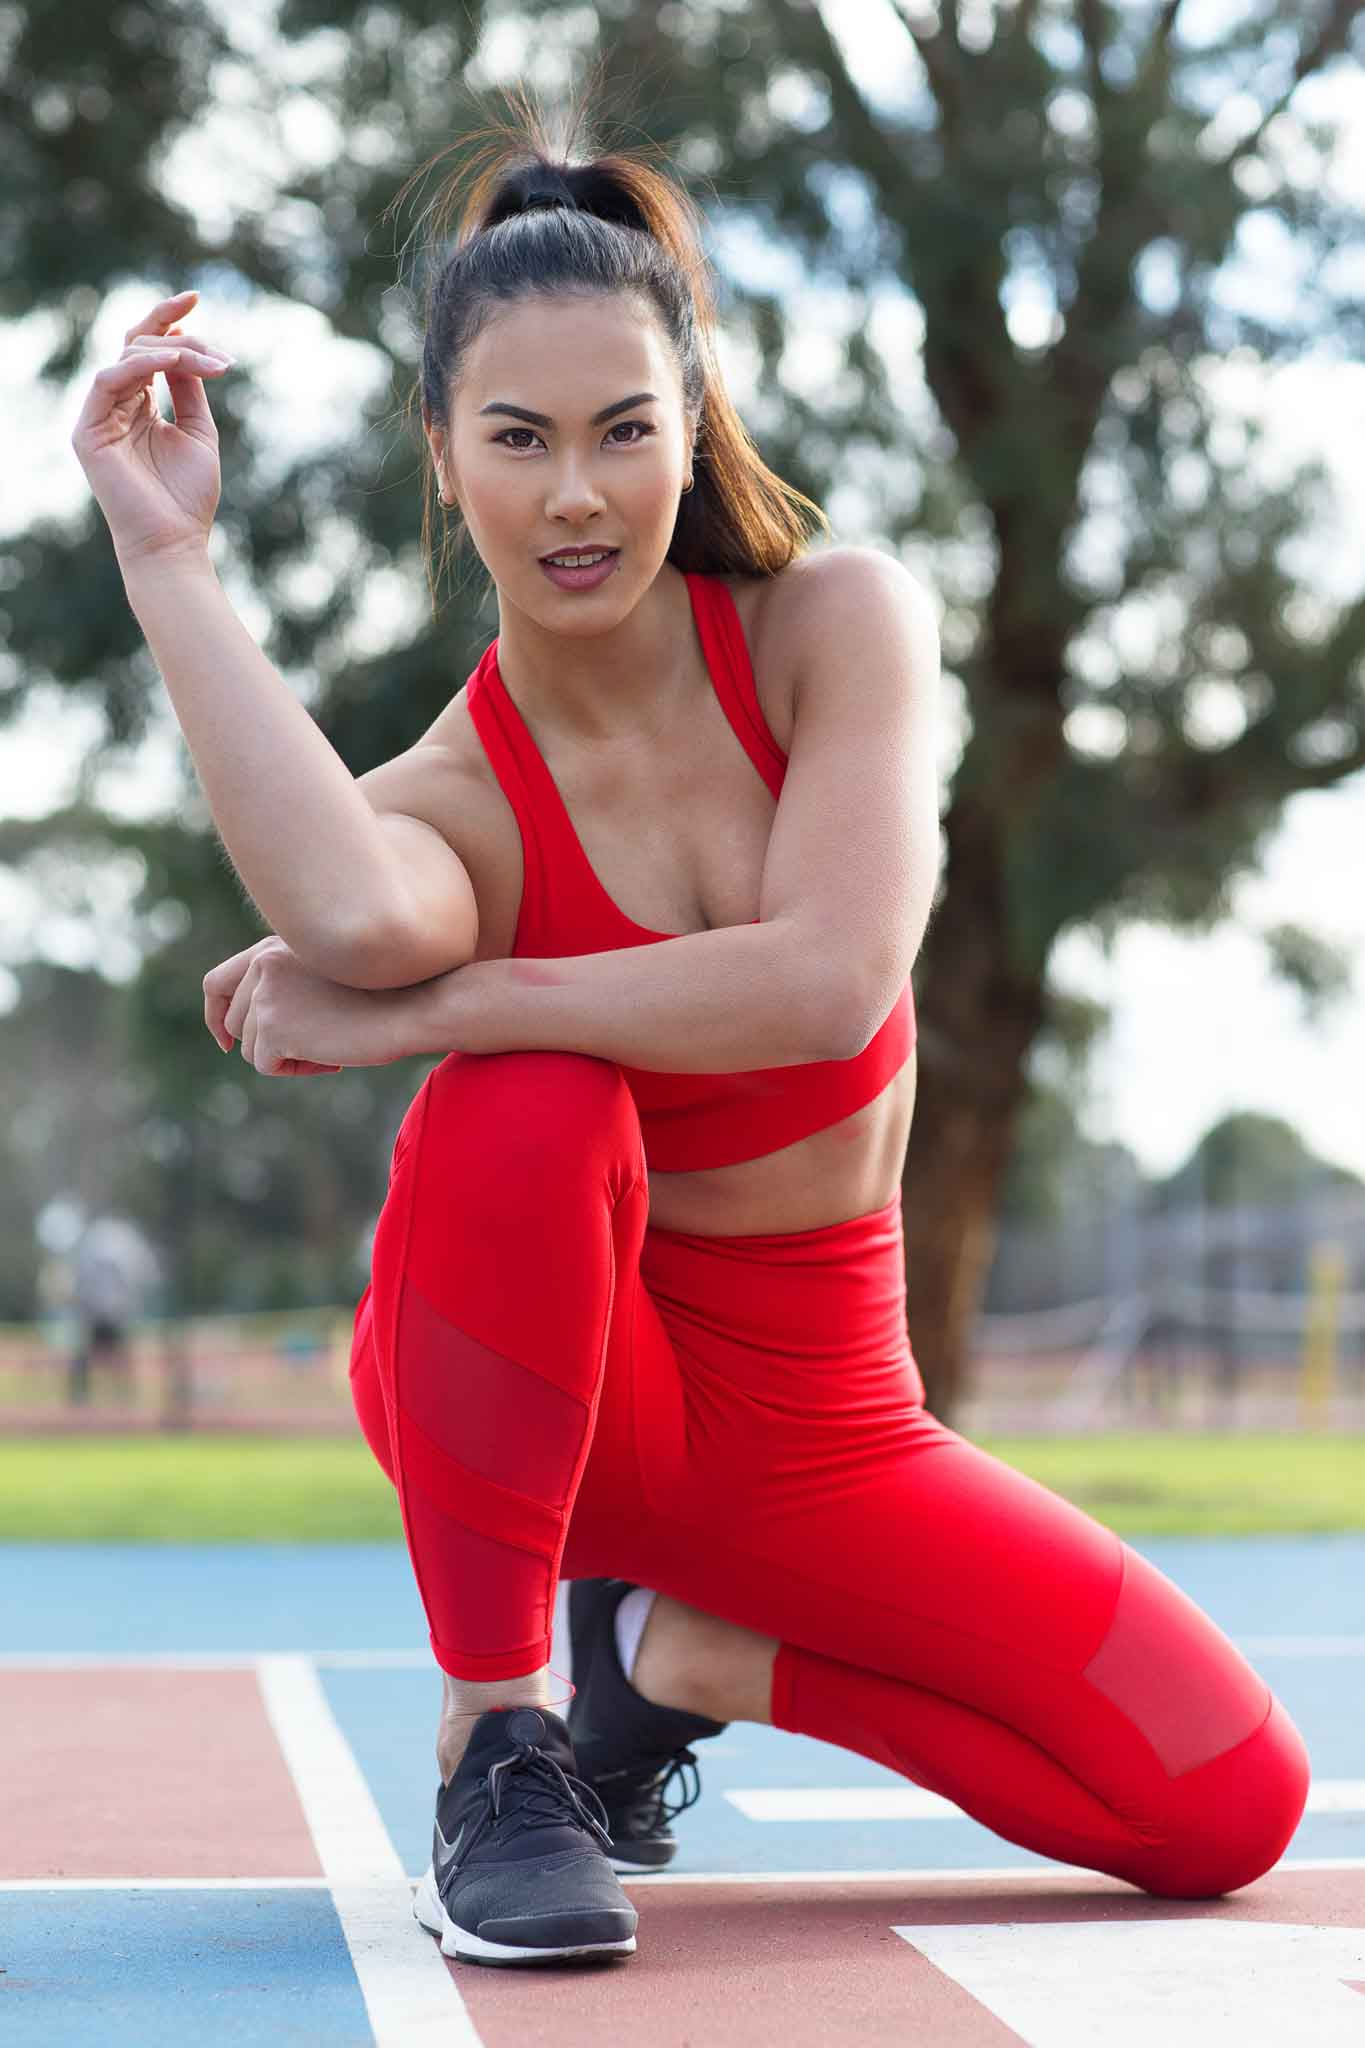 Gladysha Melbourne Fitness model featuring in Stop it I like it fitness campaign shoot.jpg